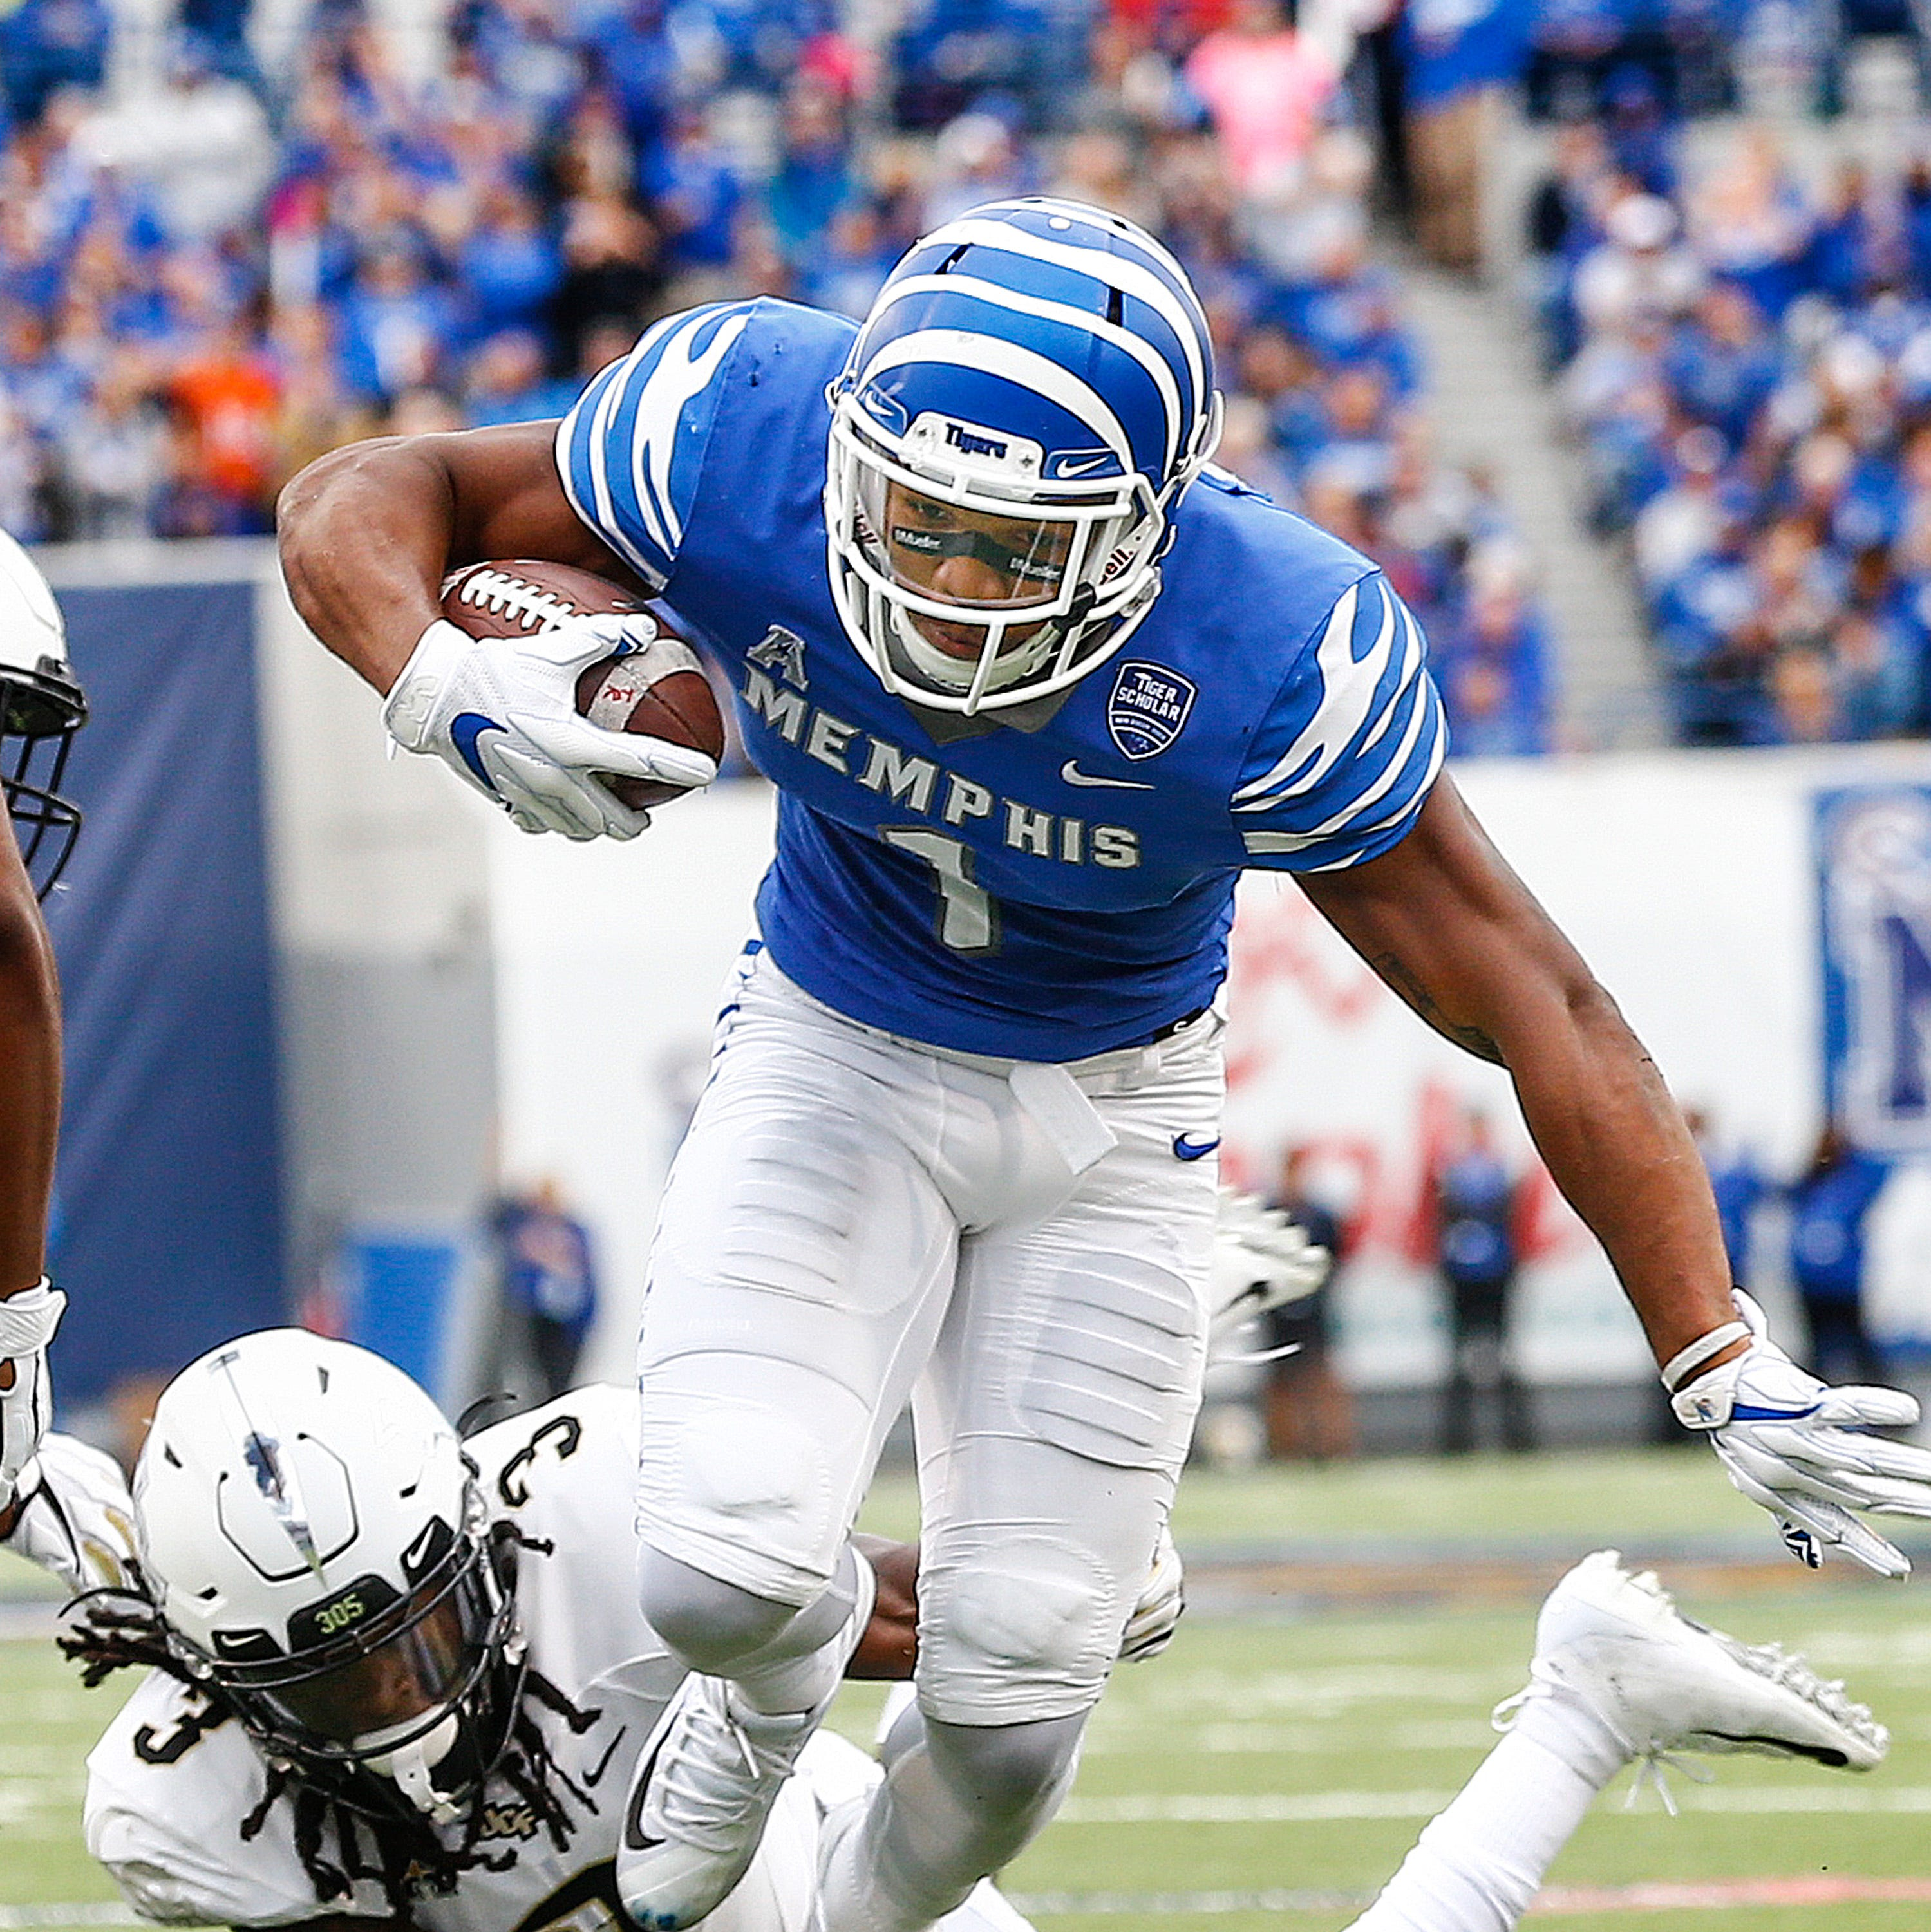 Memphis football sees late game struggles re-emerge in UCF loss